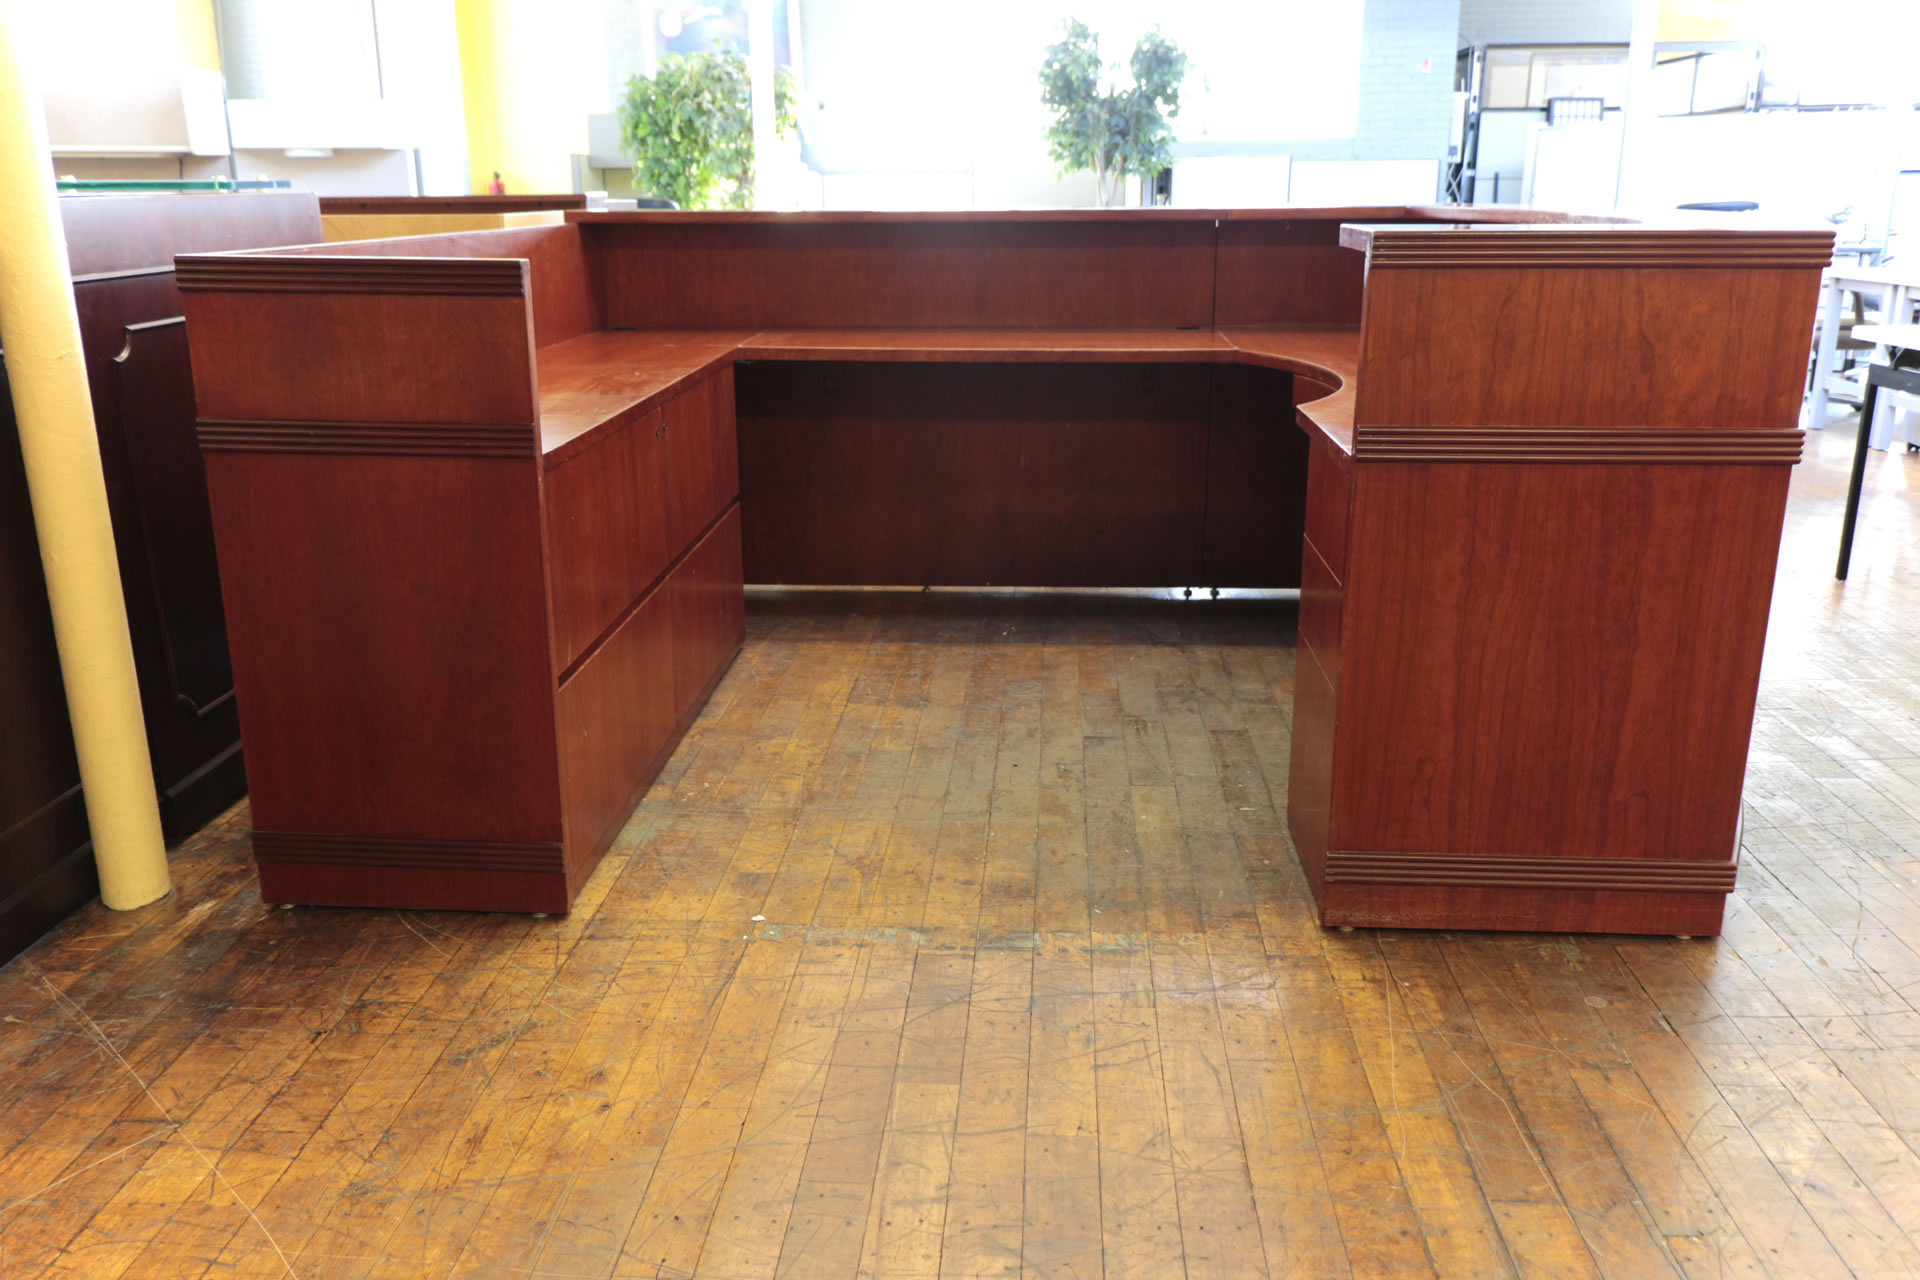 peartreeofficefurniture_peartreeofficefurniture_mg_4868.jpg